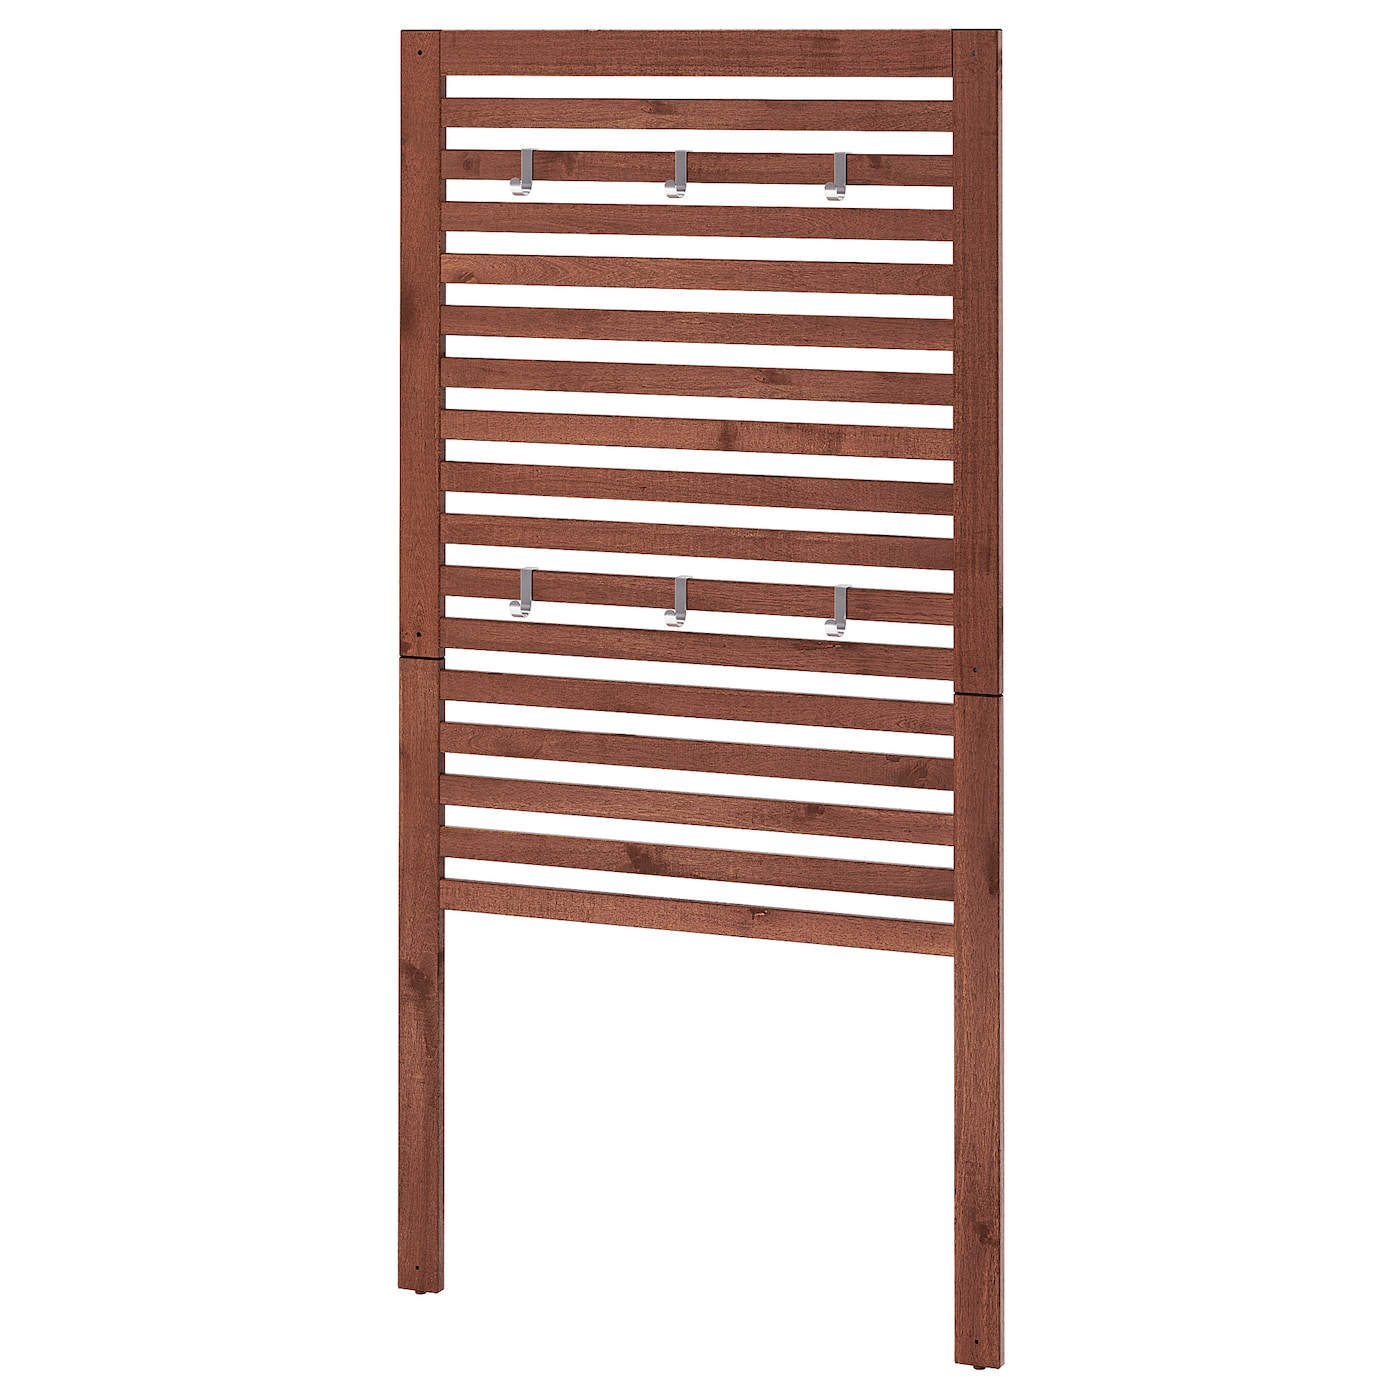 ÄPPLARÖ Wall panel, outdoor - brown stained 10x10 cm